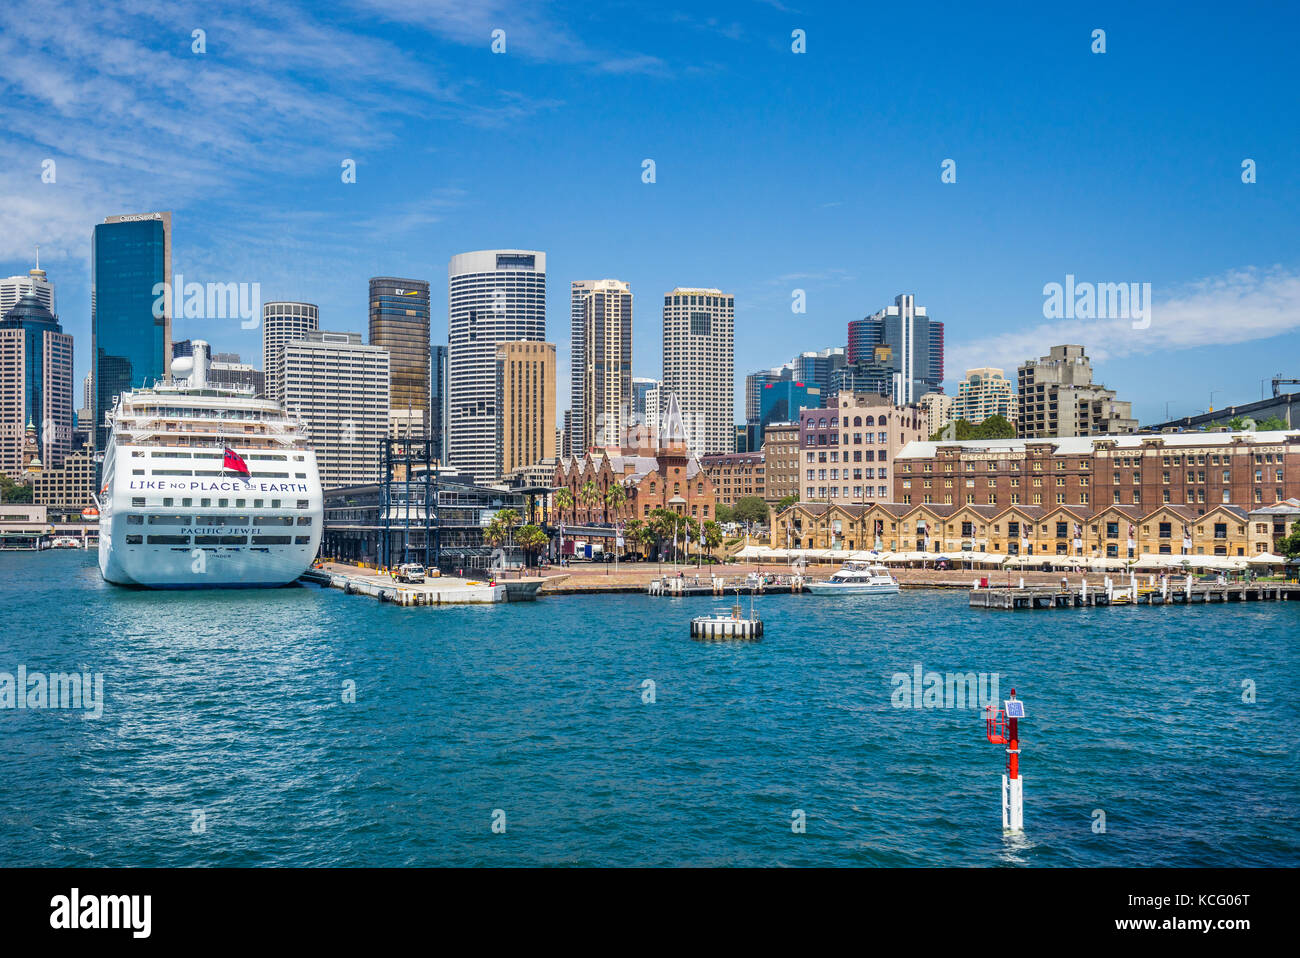 Australia, New South Wales, Sydney Cove, view of Campbells Cove and cruise ship Pacific Jewel at the Overseas Passenger Stock Photo